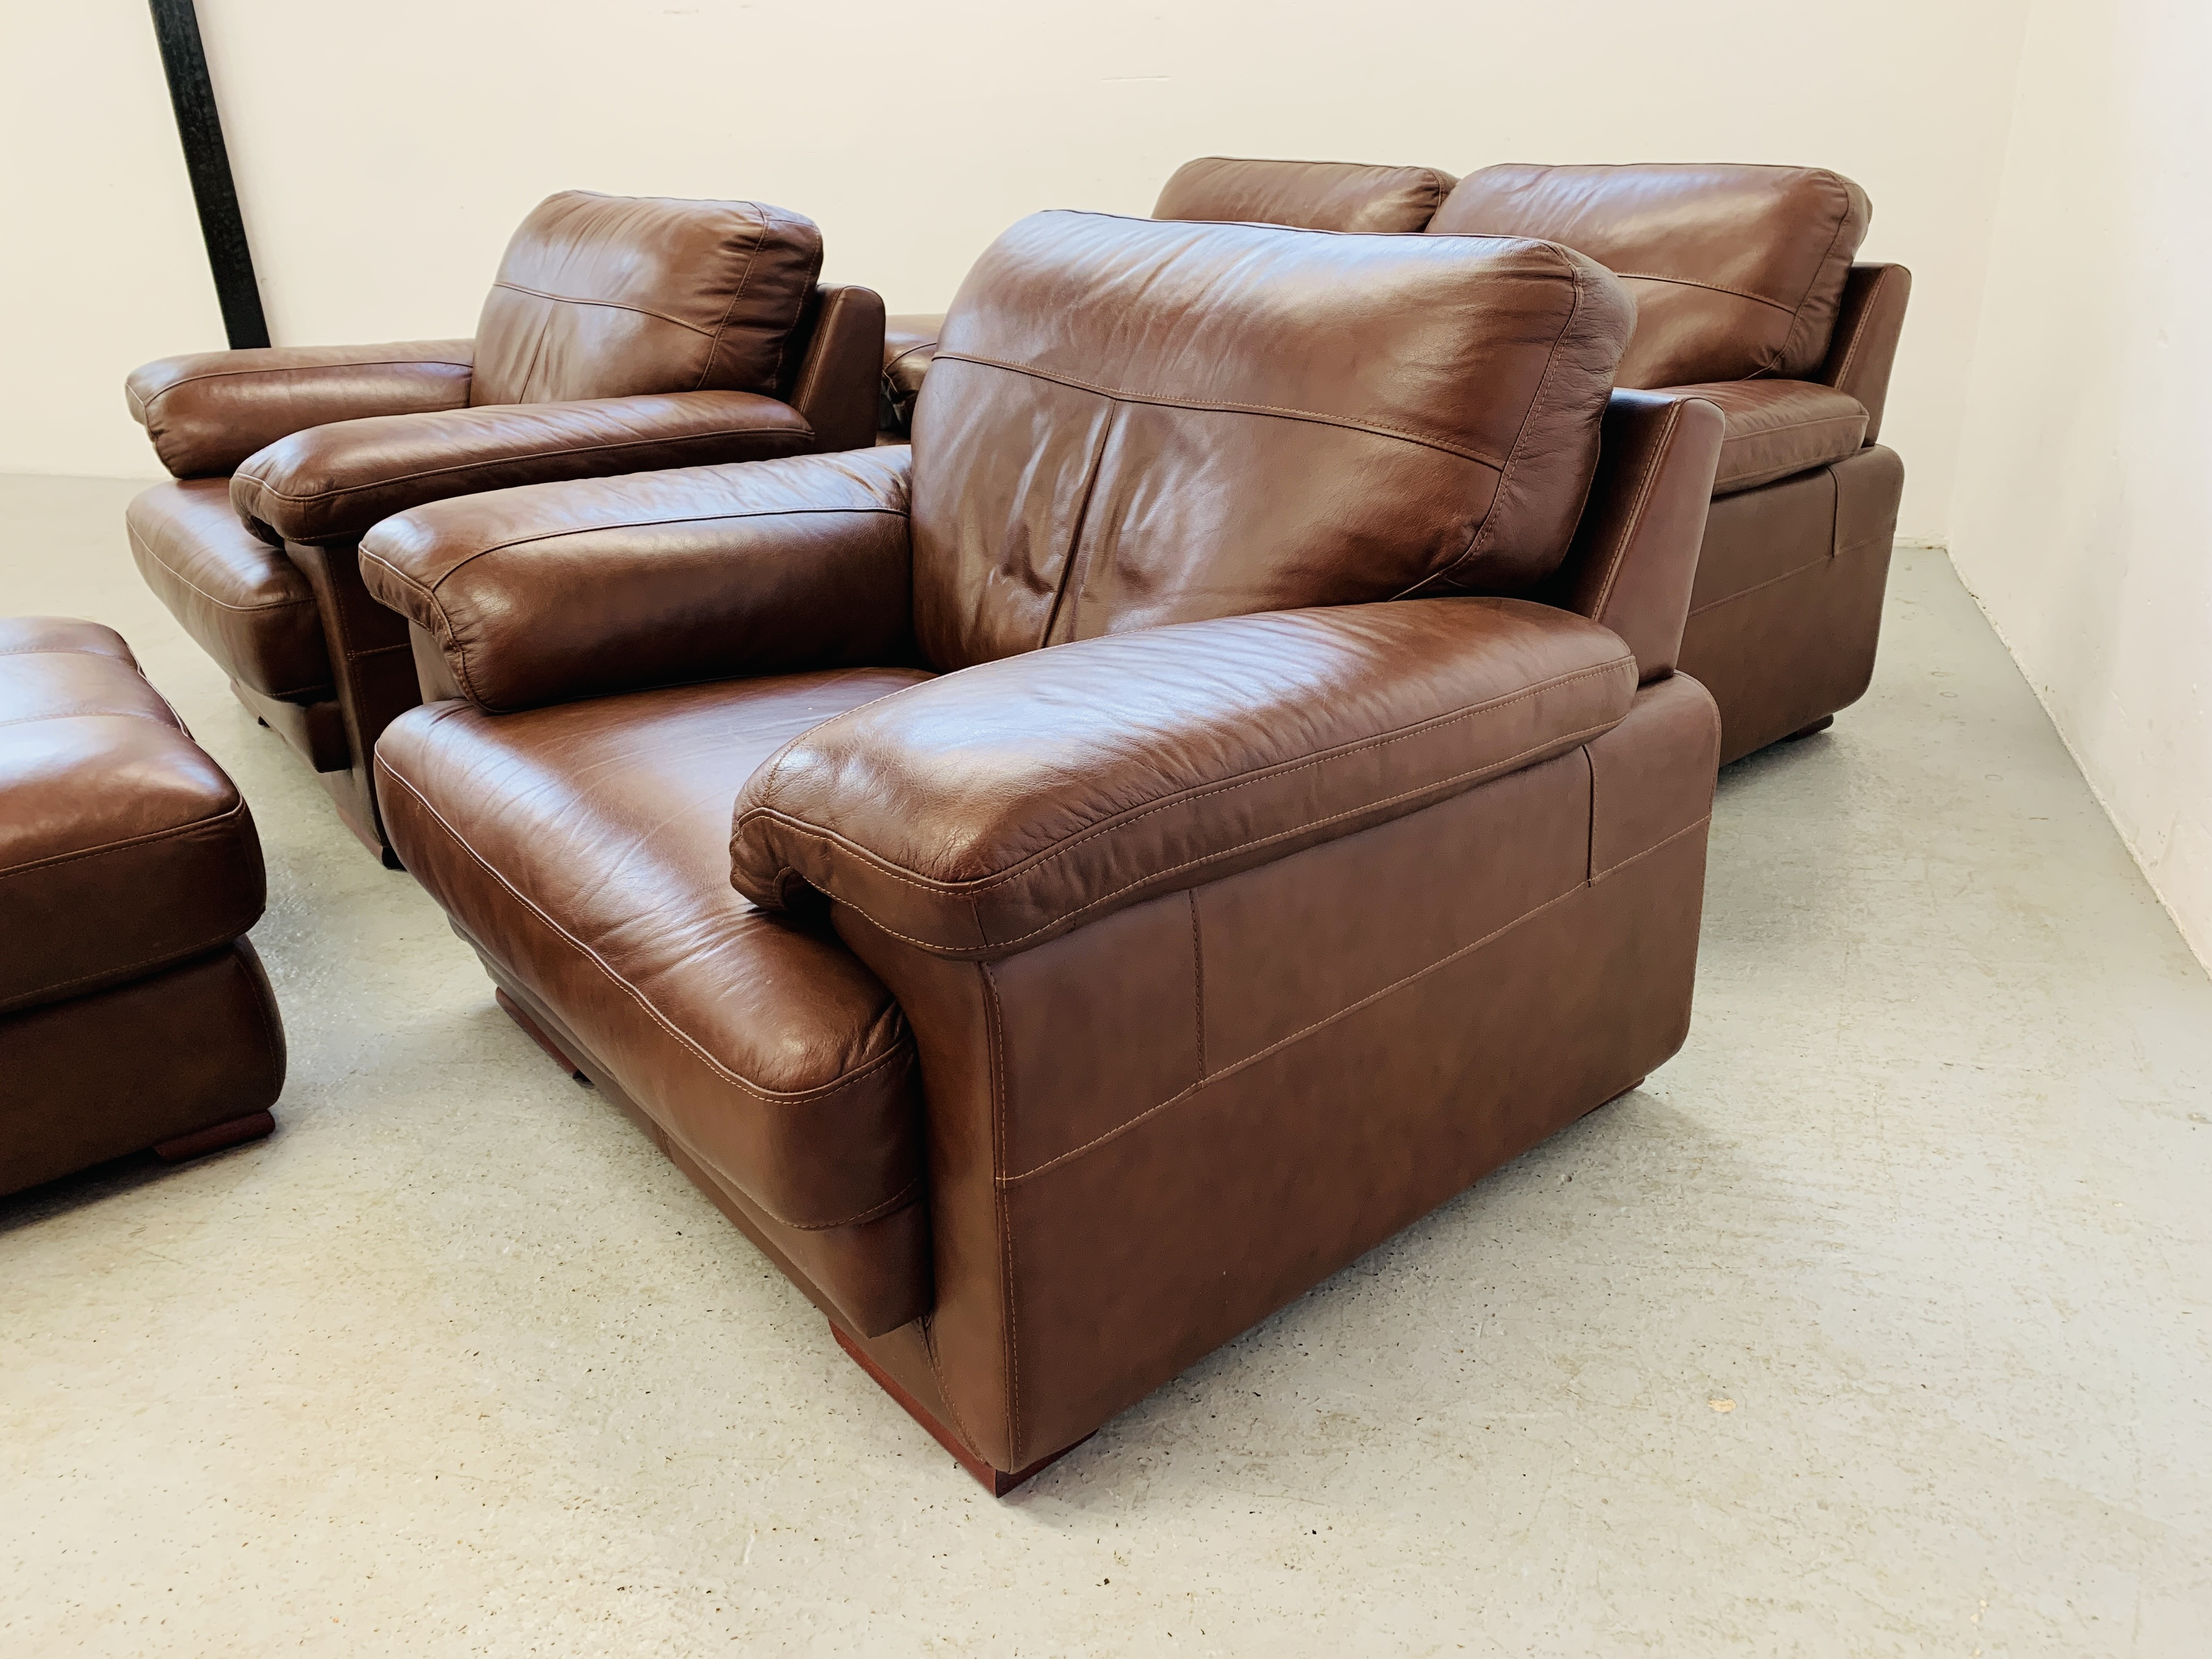 A GOOD QUALITY TAN LEATHER THREE PIECE LOUNGE SUITE WITH MATCHING POUFFE - Image 4 of 17